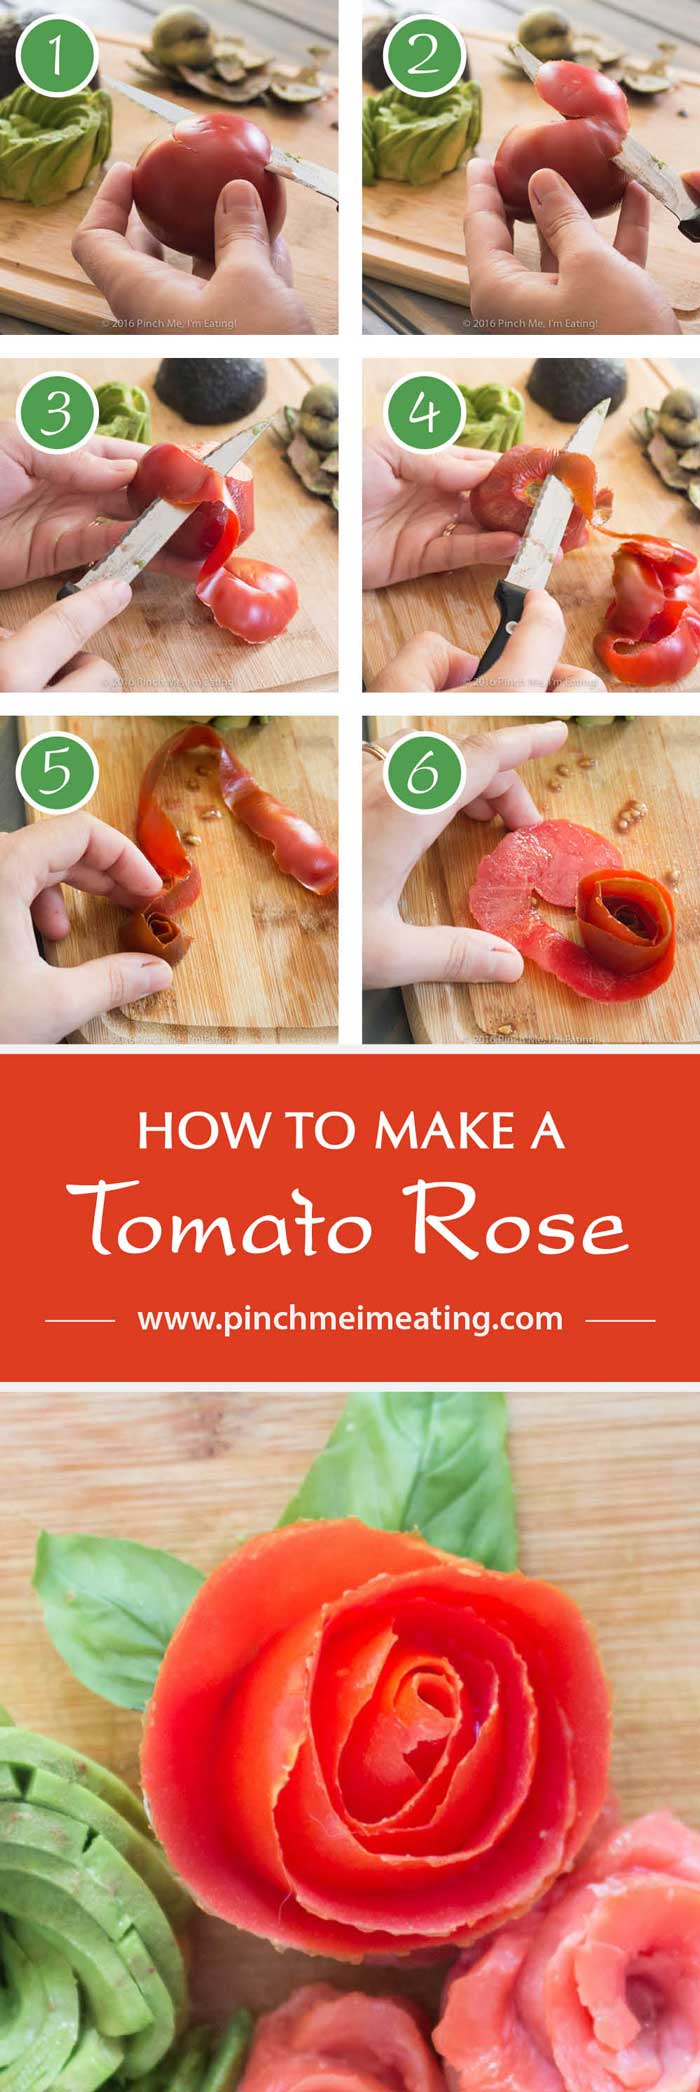 Smoked salmon, tomato, and avocado rose salad, including step-by-step instructions on how to make a tomato rose. | www.pinchmeimeating.com